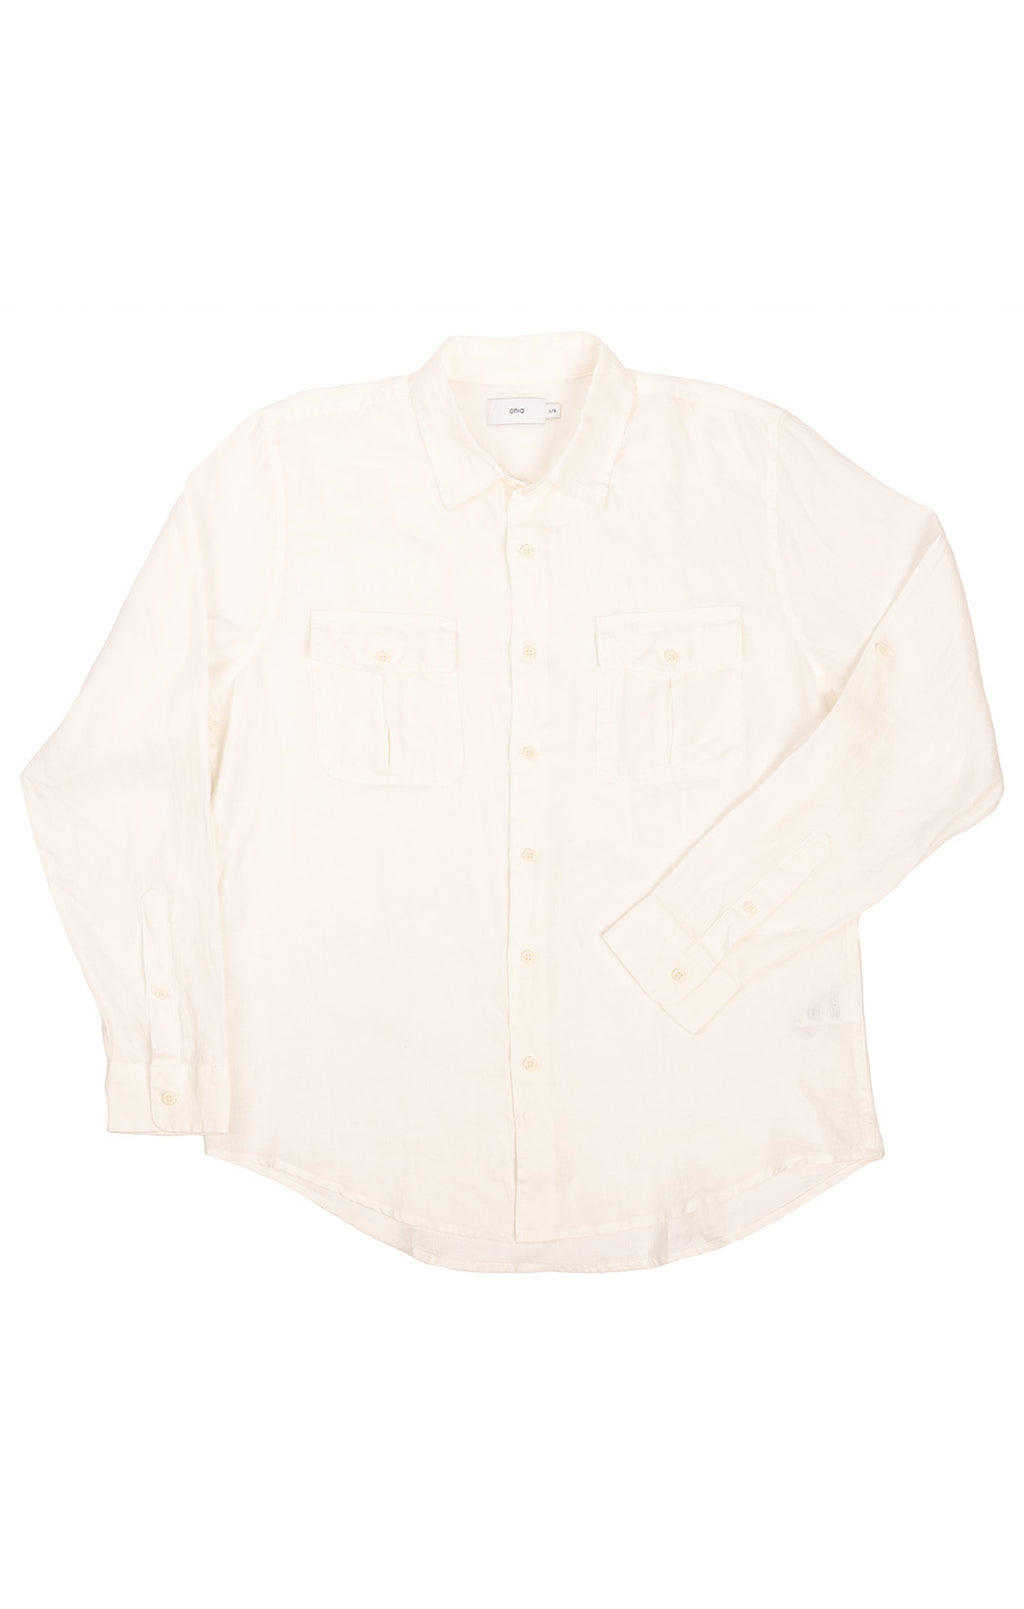 White linen long sleeve button-down shirt with two front flap pockets